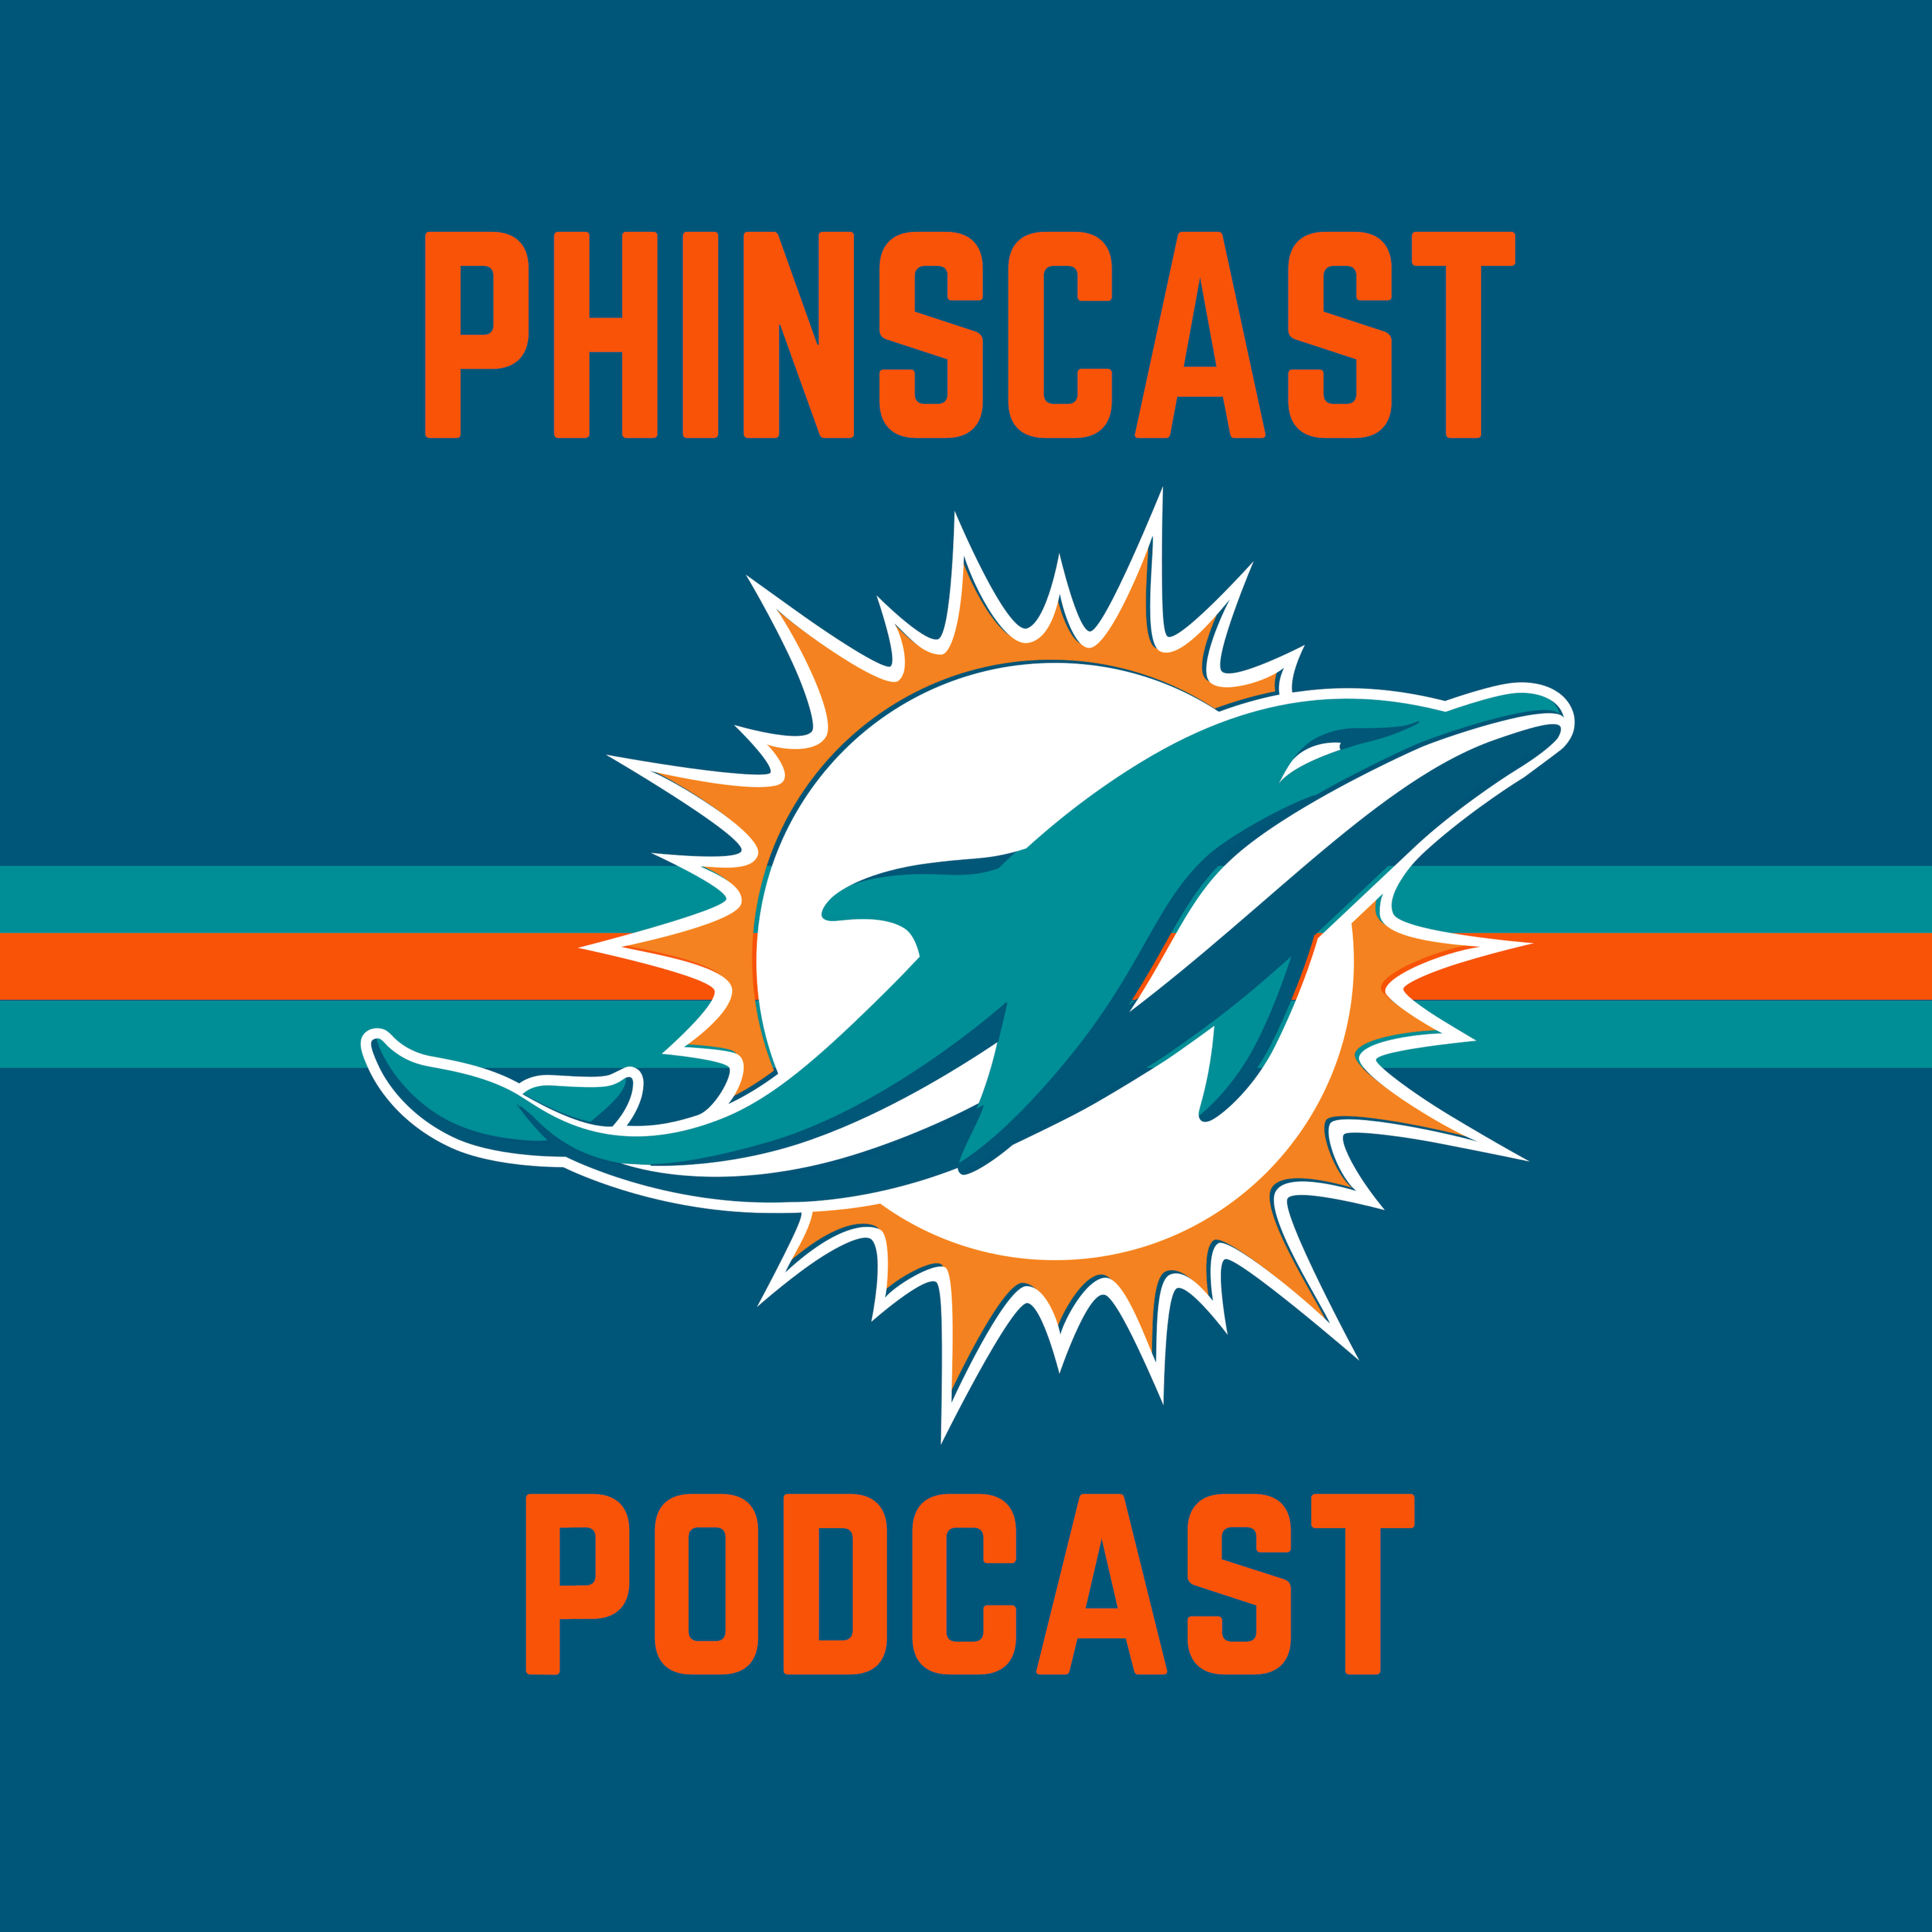 Phinscast Podcast